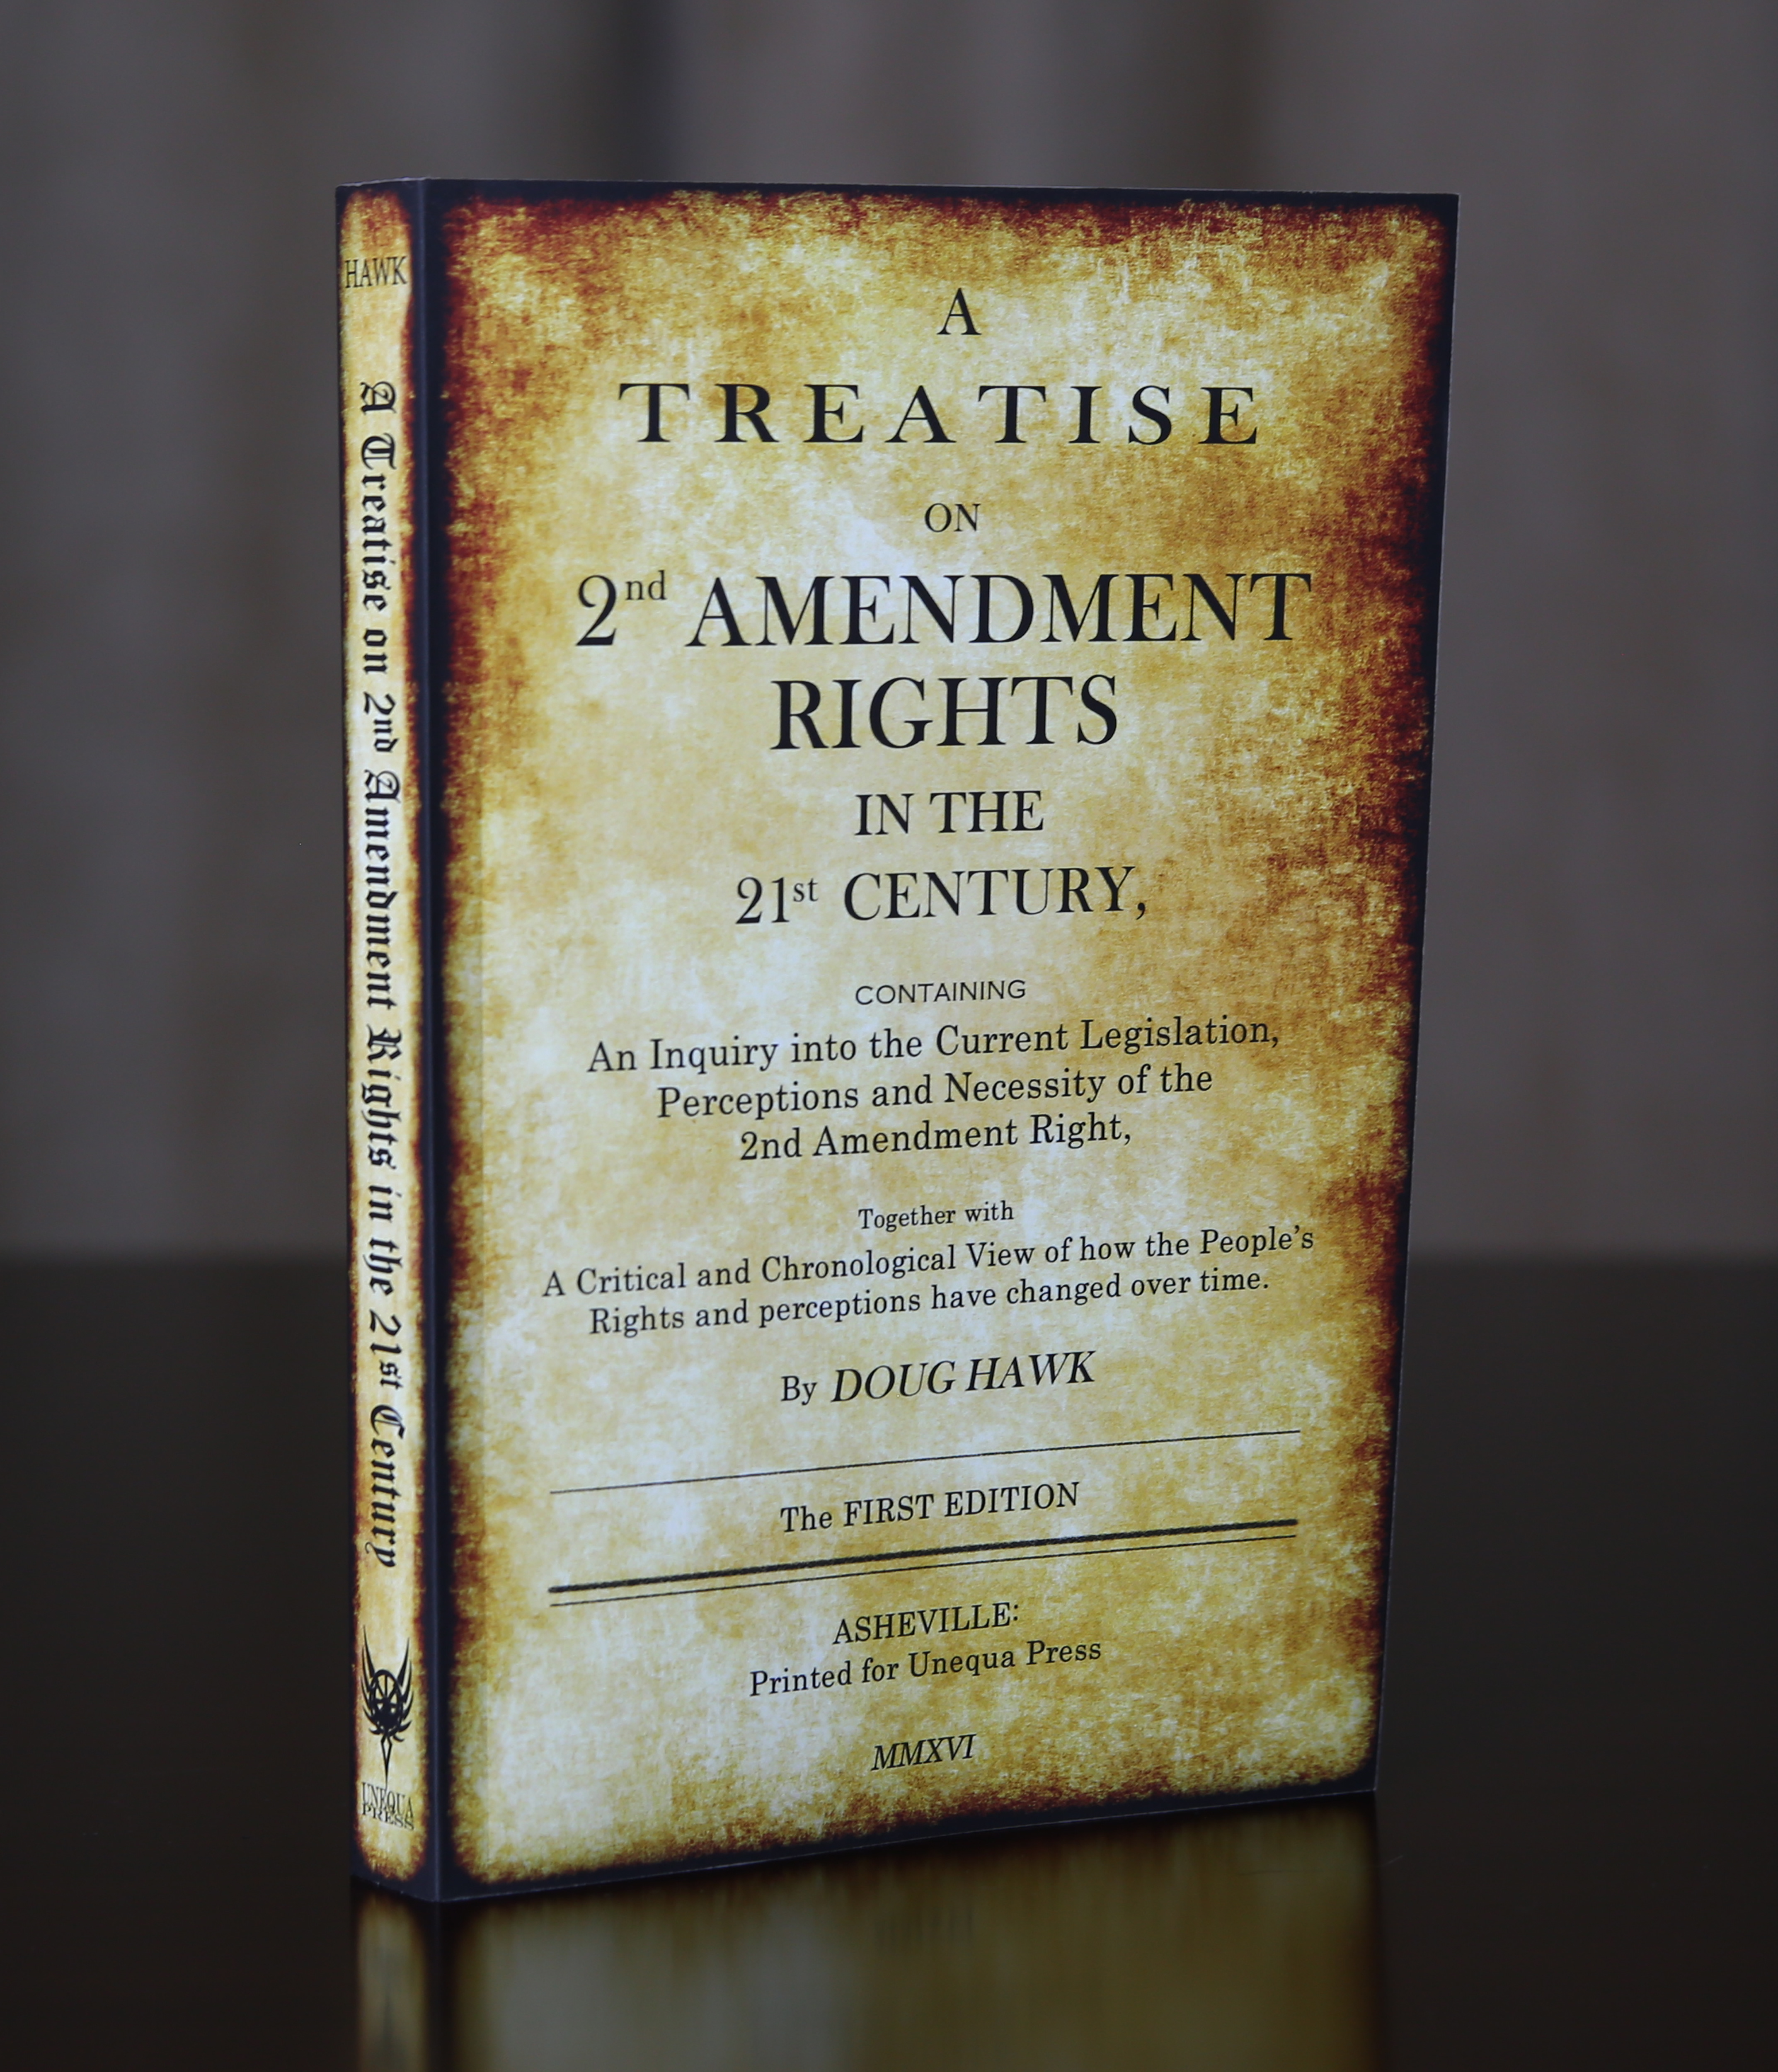 a treatise on 2nd amendment rights in the 21st century dismantles